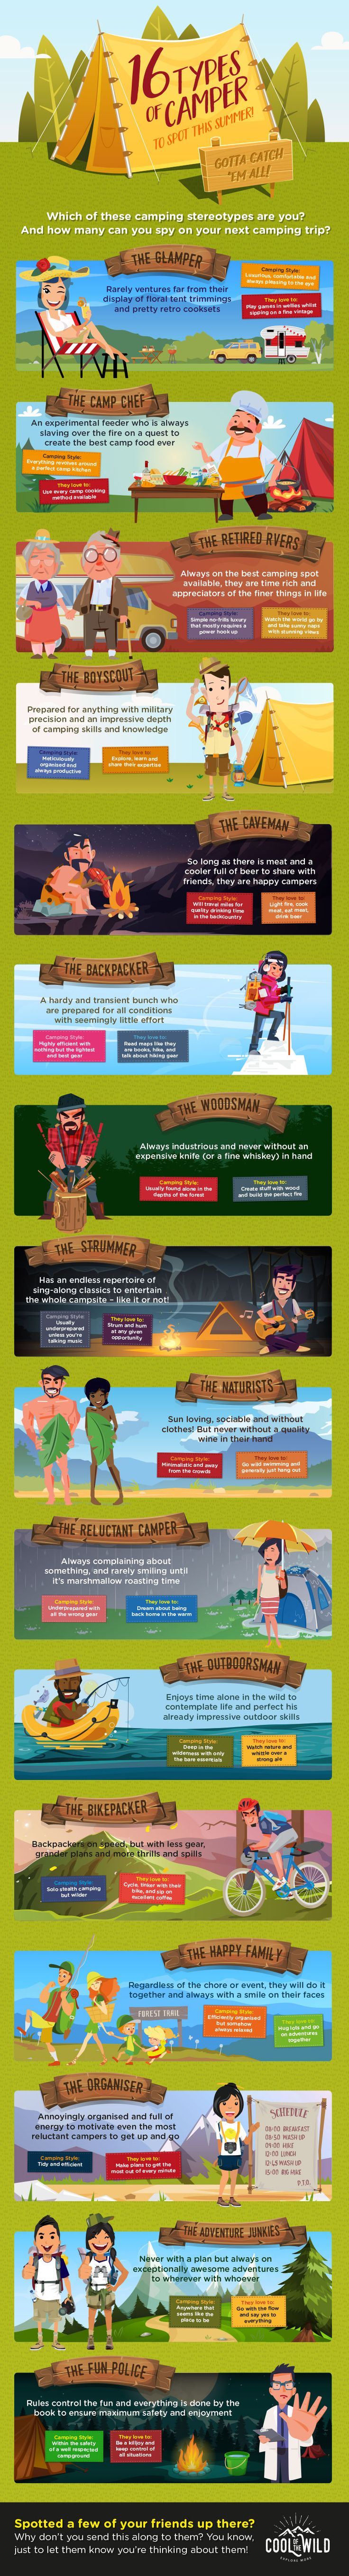 Love camping? Then check out our infographic to see which type of camper you are!